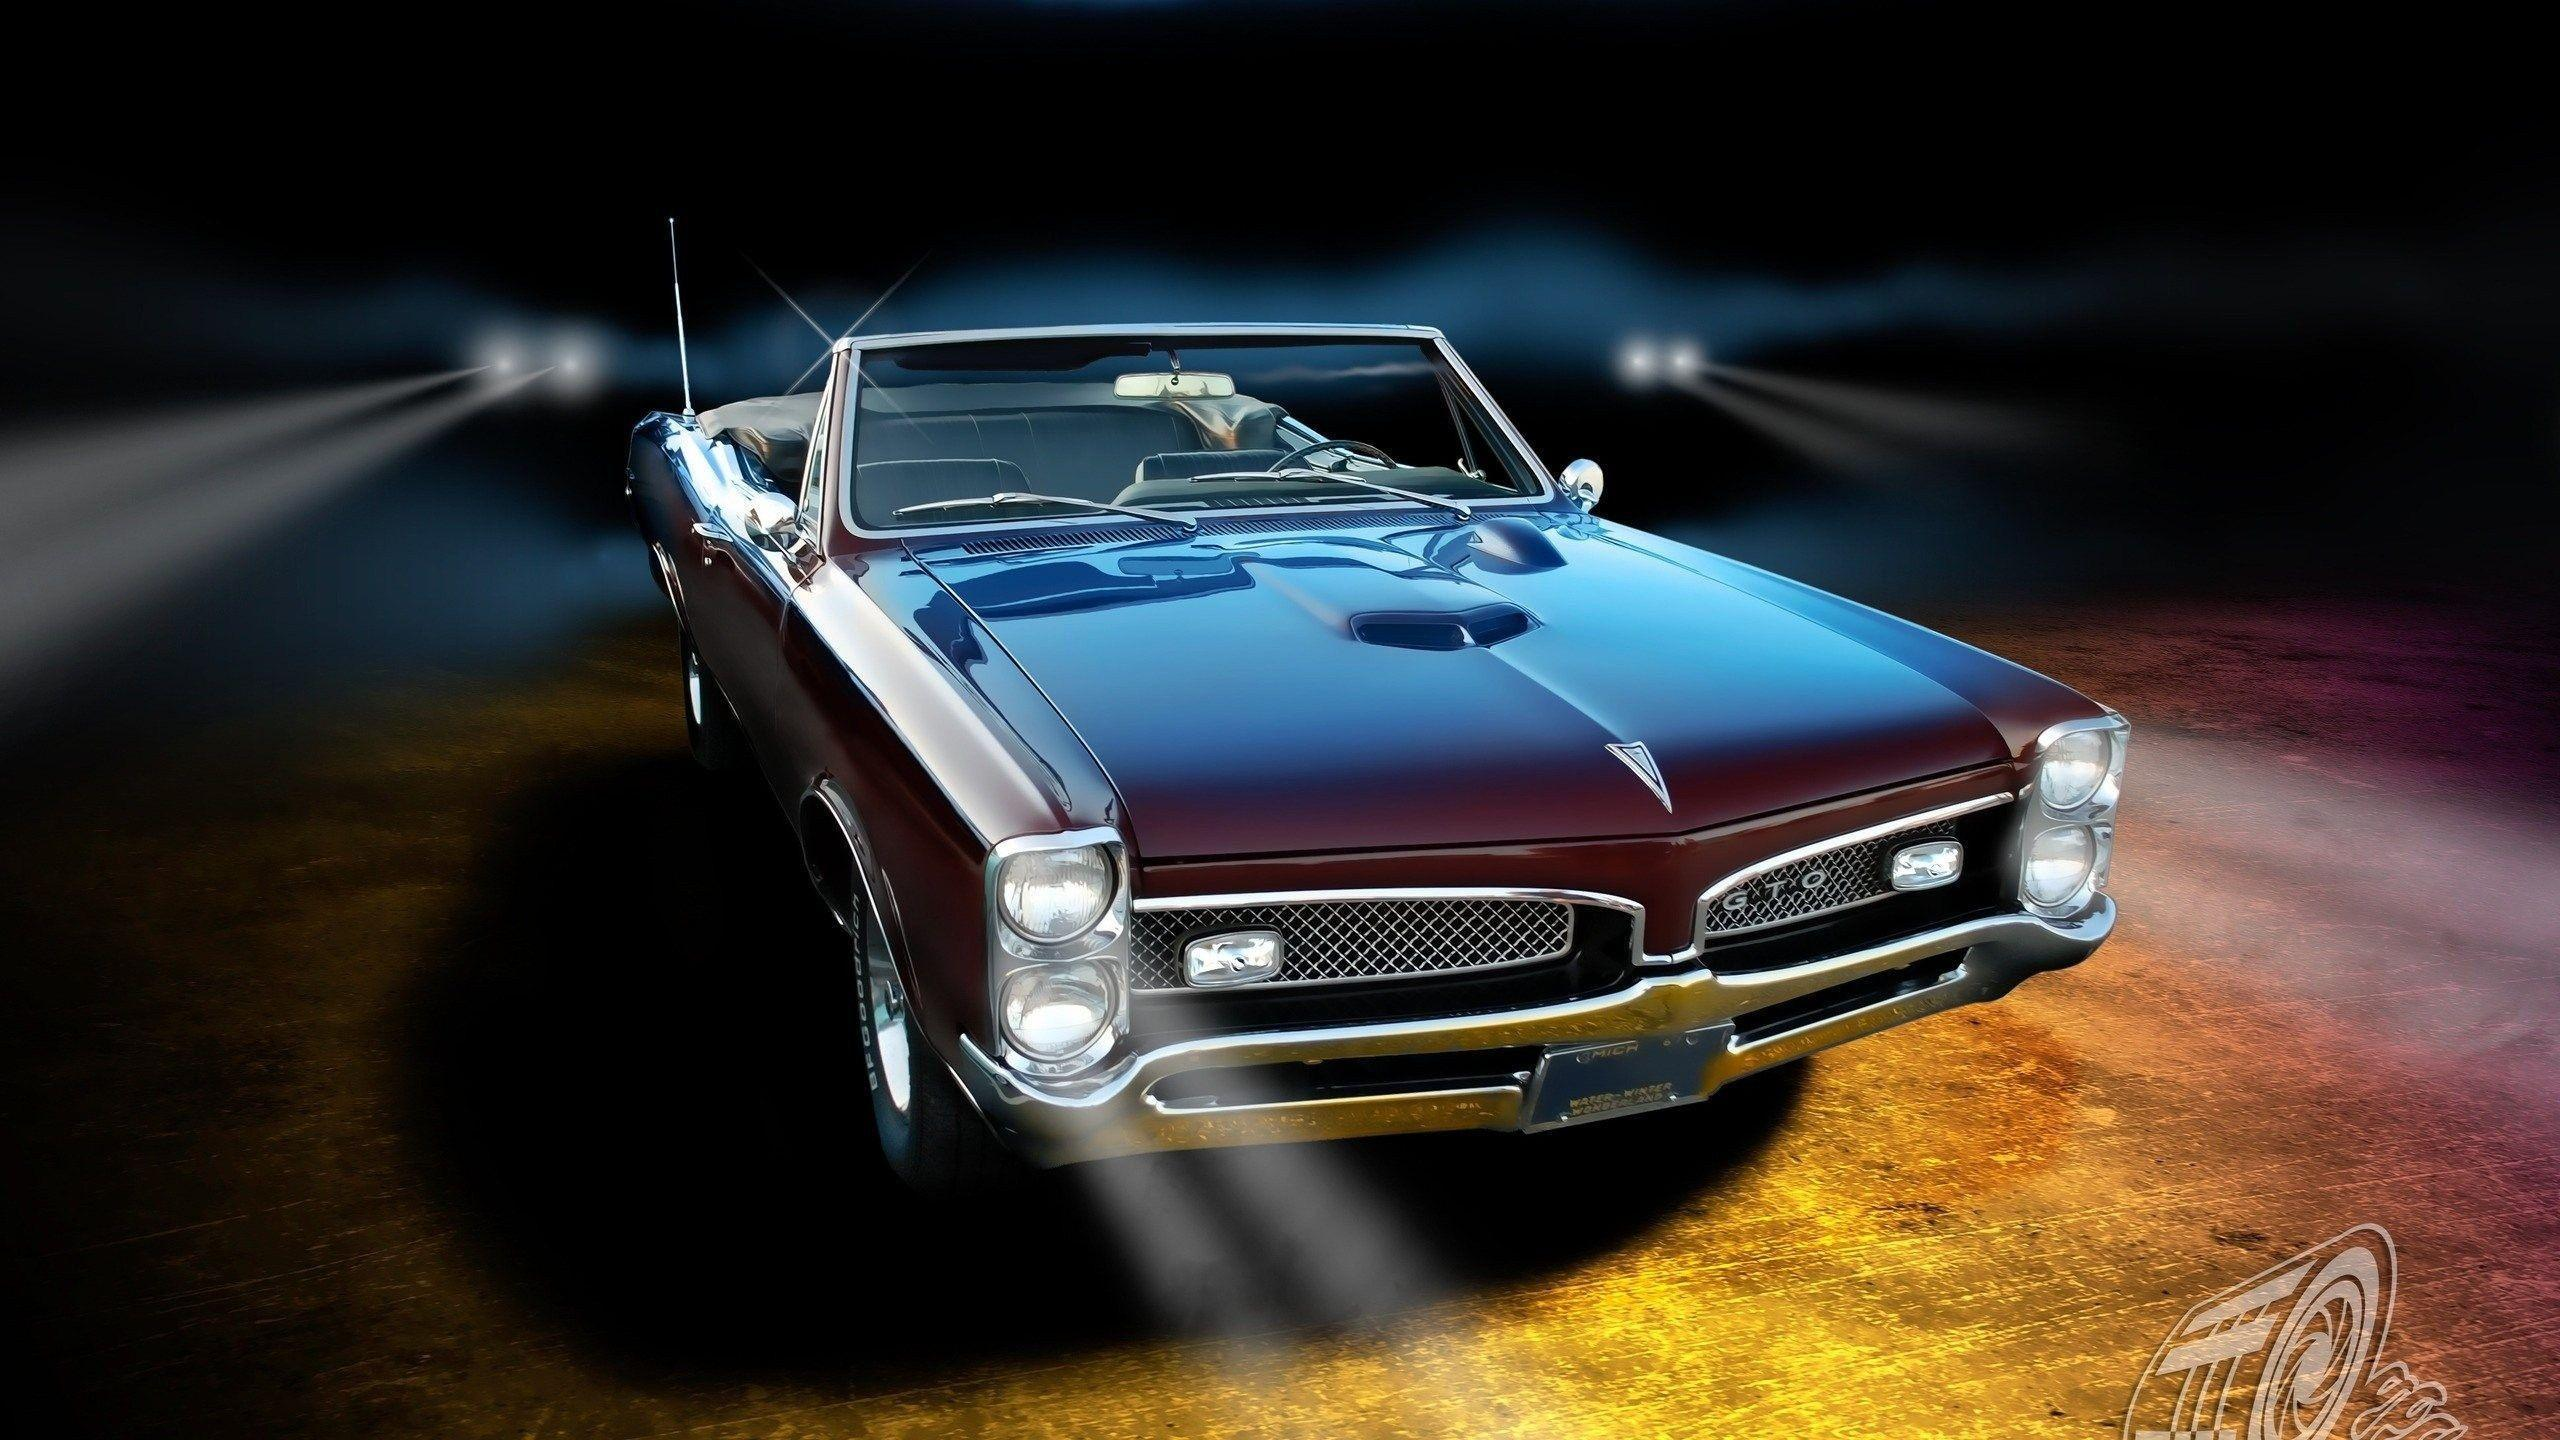 Pontiac GTO classic muscle cars wallpapers